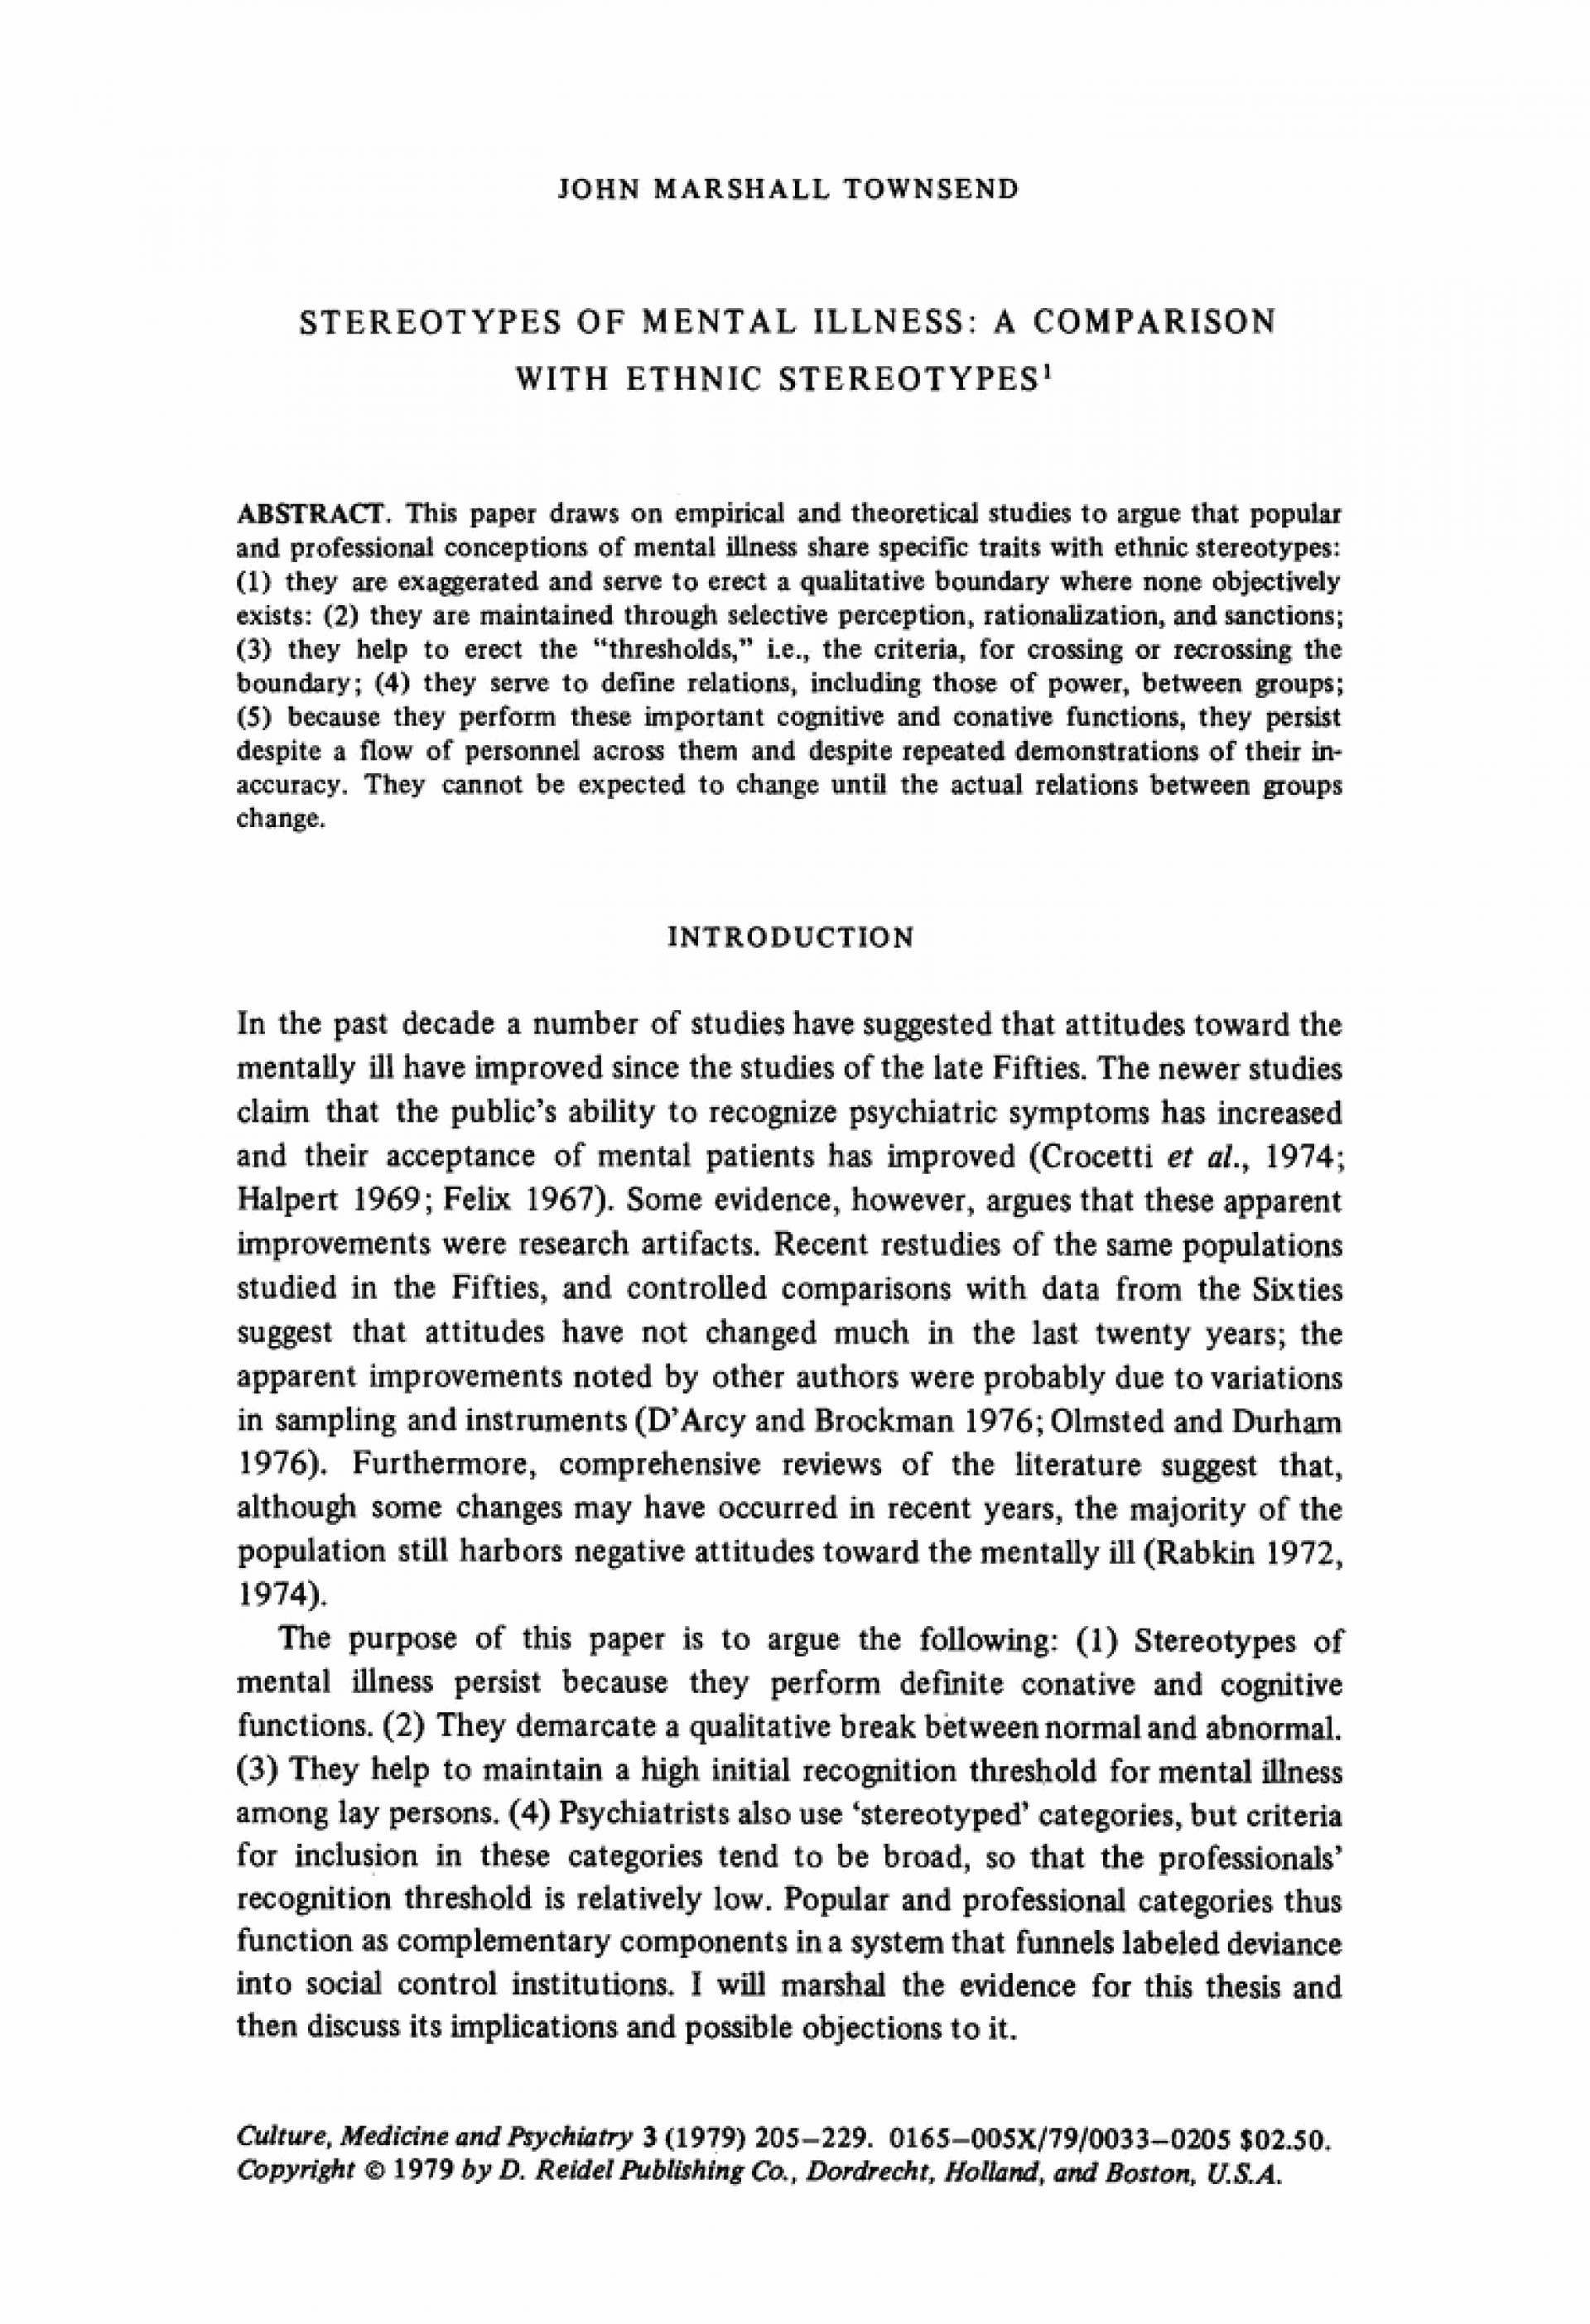 001 Stereotypes Of Mental Illness Comparison With Ethnic Springer Stereotype Essay L Unique Conclusion Hook 1920